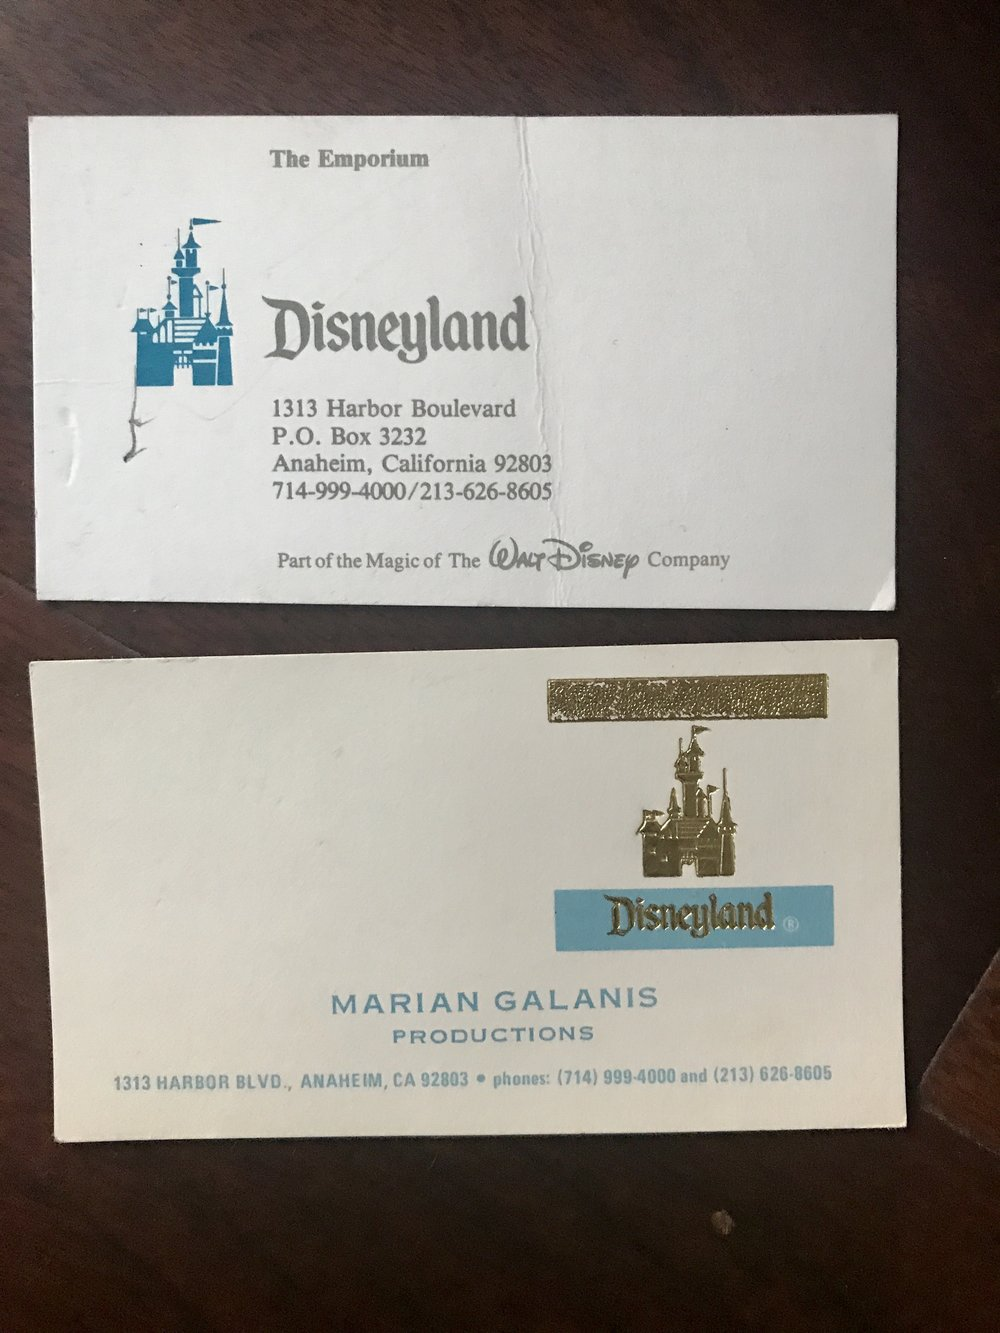 Friday find disneyland store business cards disneydaze this last business card is really fun by the time marian was my supervisor she had been there awhile i think she had started in the early 1970s and colourmoves